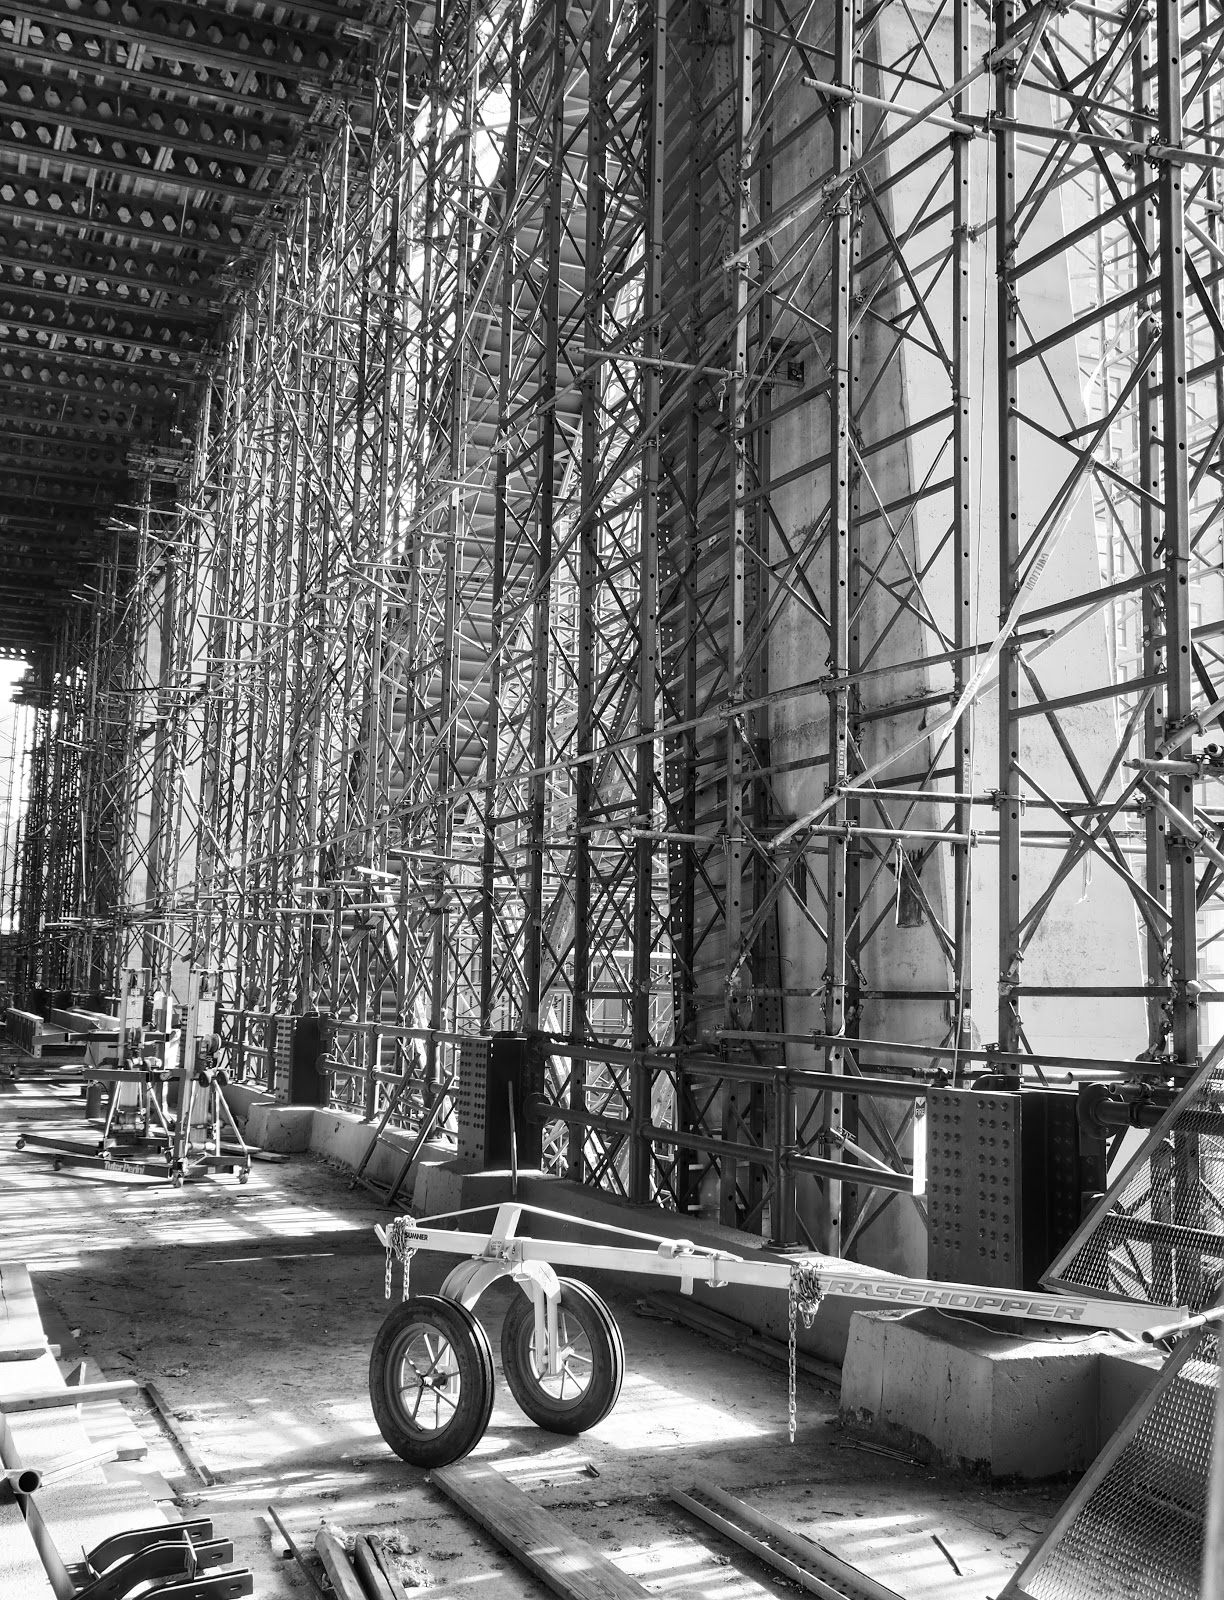 Tinker Toys in Black & White  #tinkertoys #construction #nyc #hudsonyard 2014